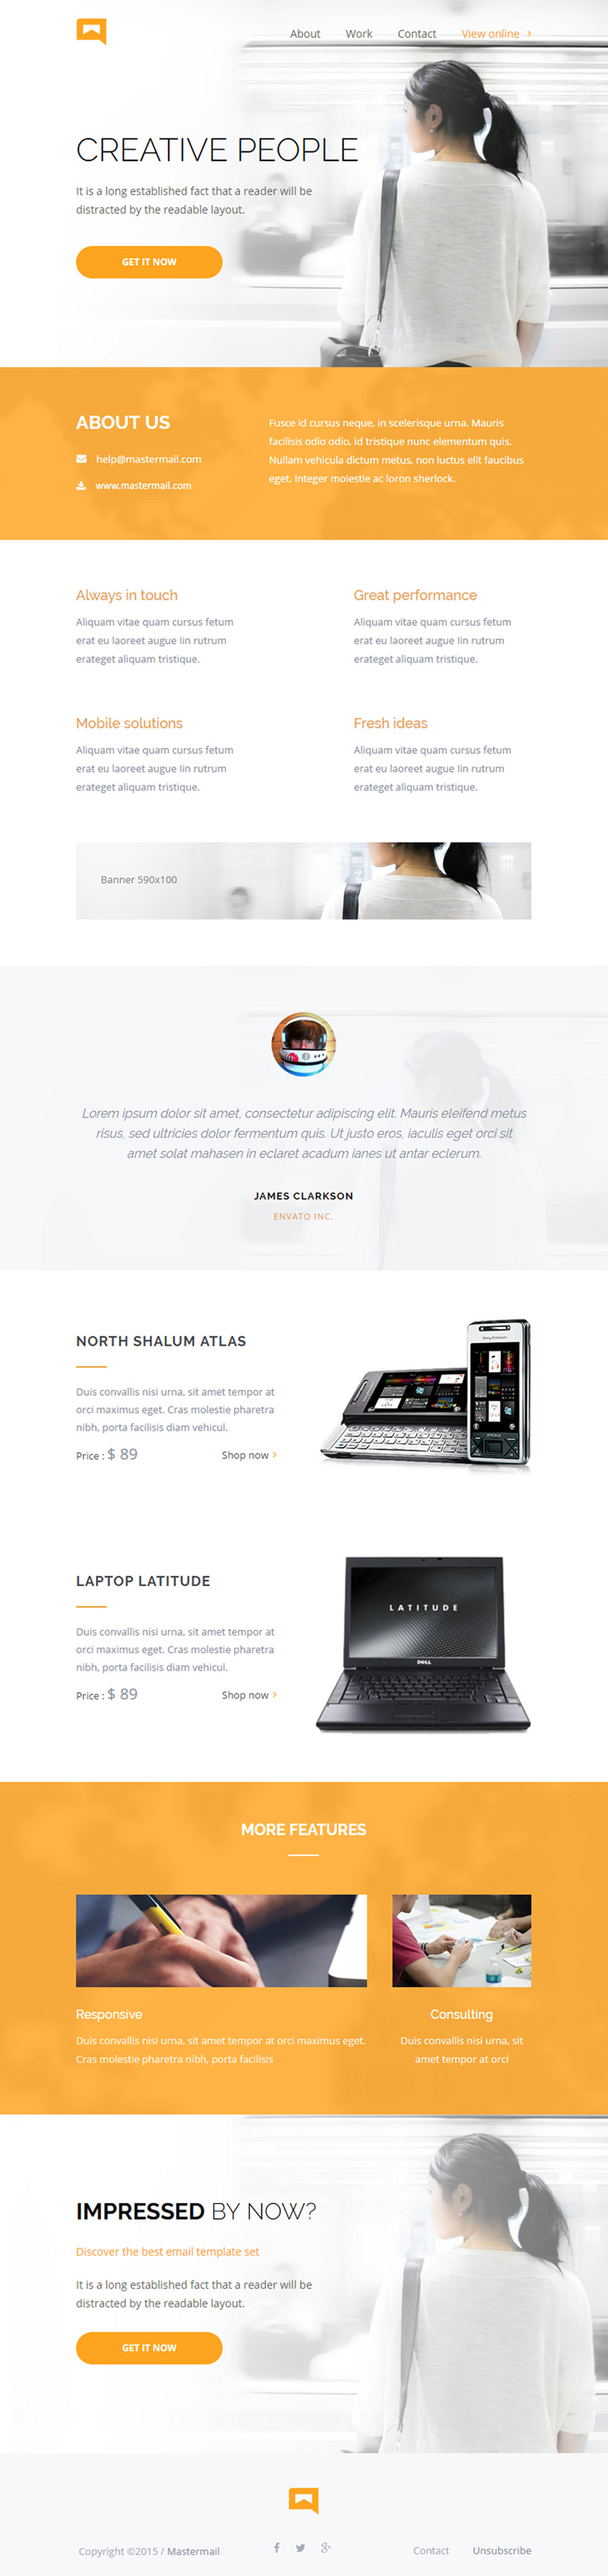 omail premium responsive email templates set with online builder html5 template responsive. Black Bedroom Furniture Sets. Home Design Ideas